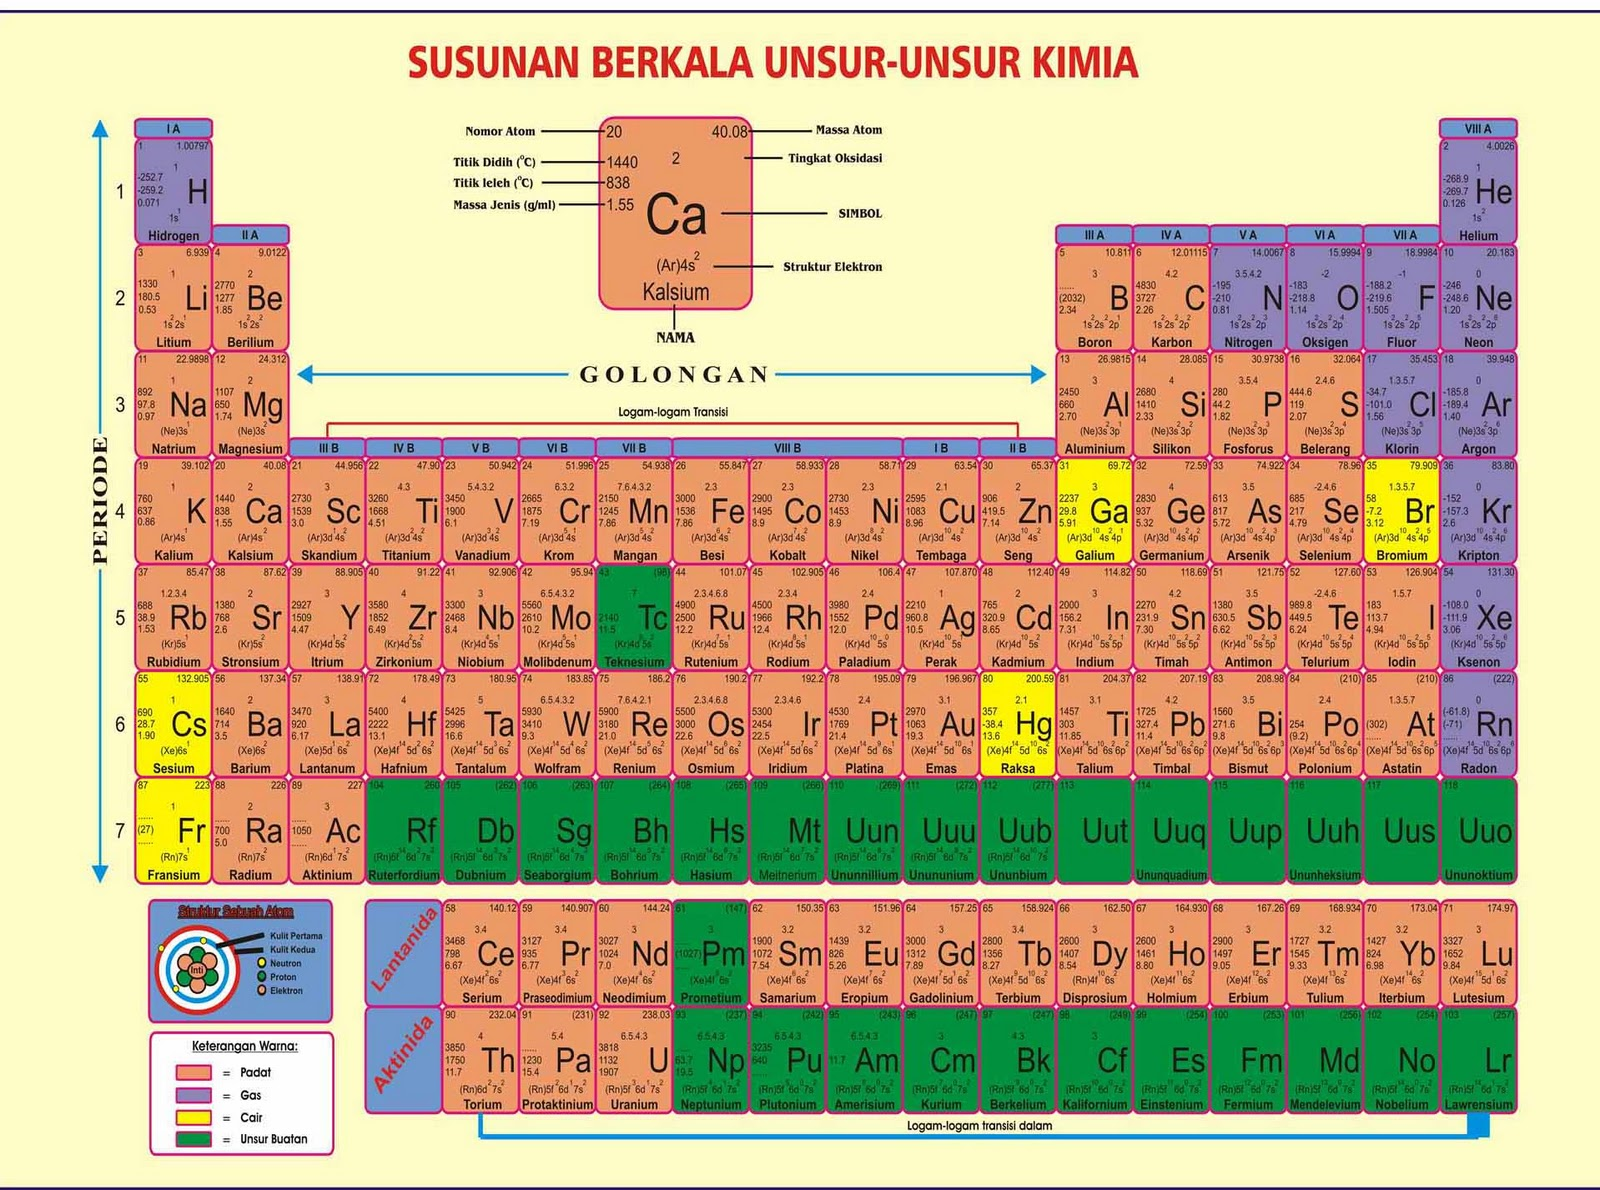 Periodik tabel indonesian periodic tables of the elements michael periodik tabel indonesian periodic tables of the elements michael canov from czech republic ccuart Choice Image